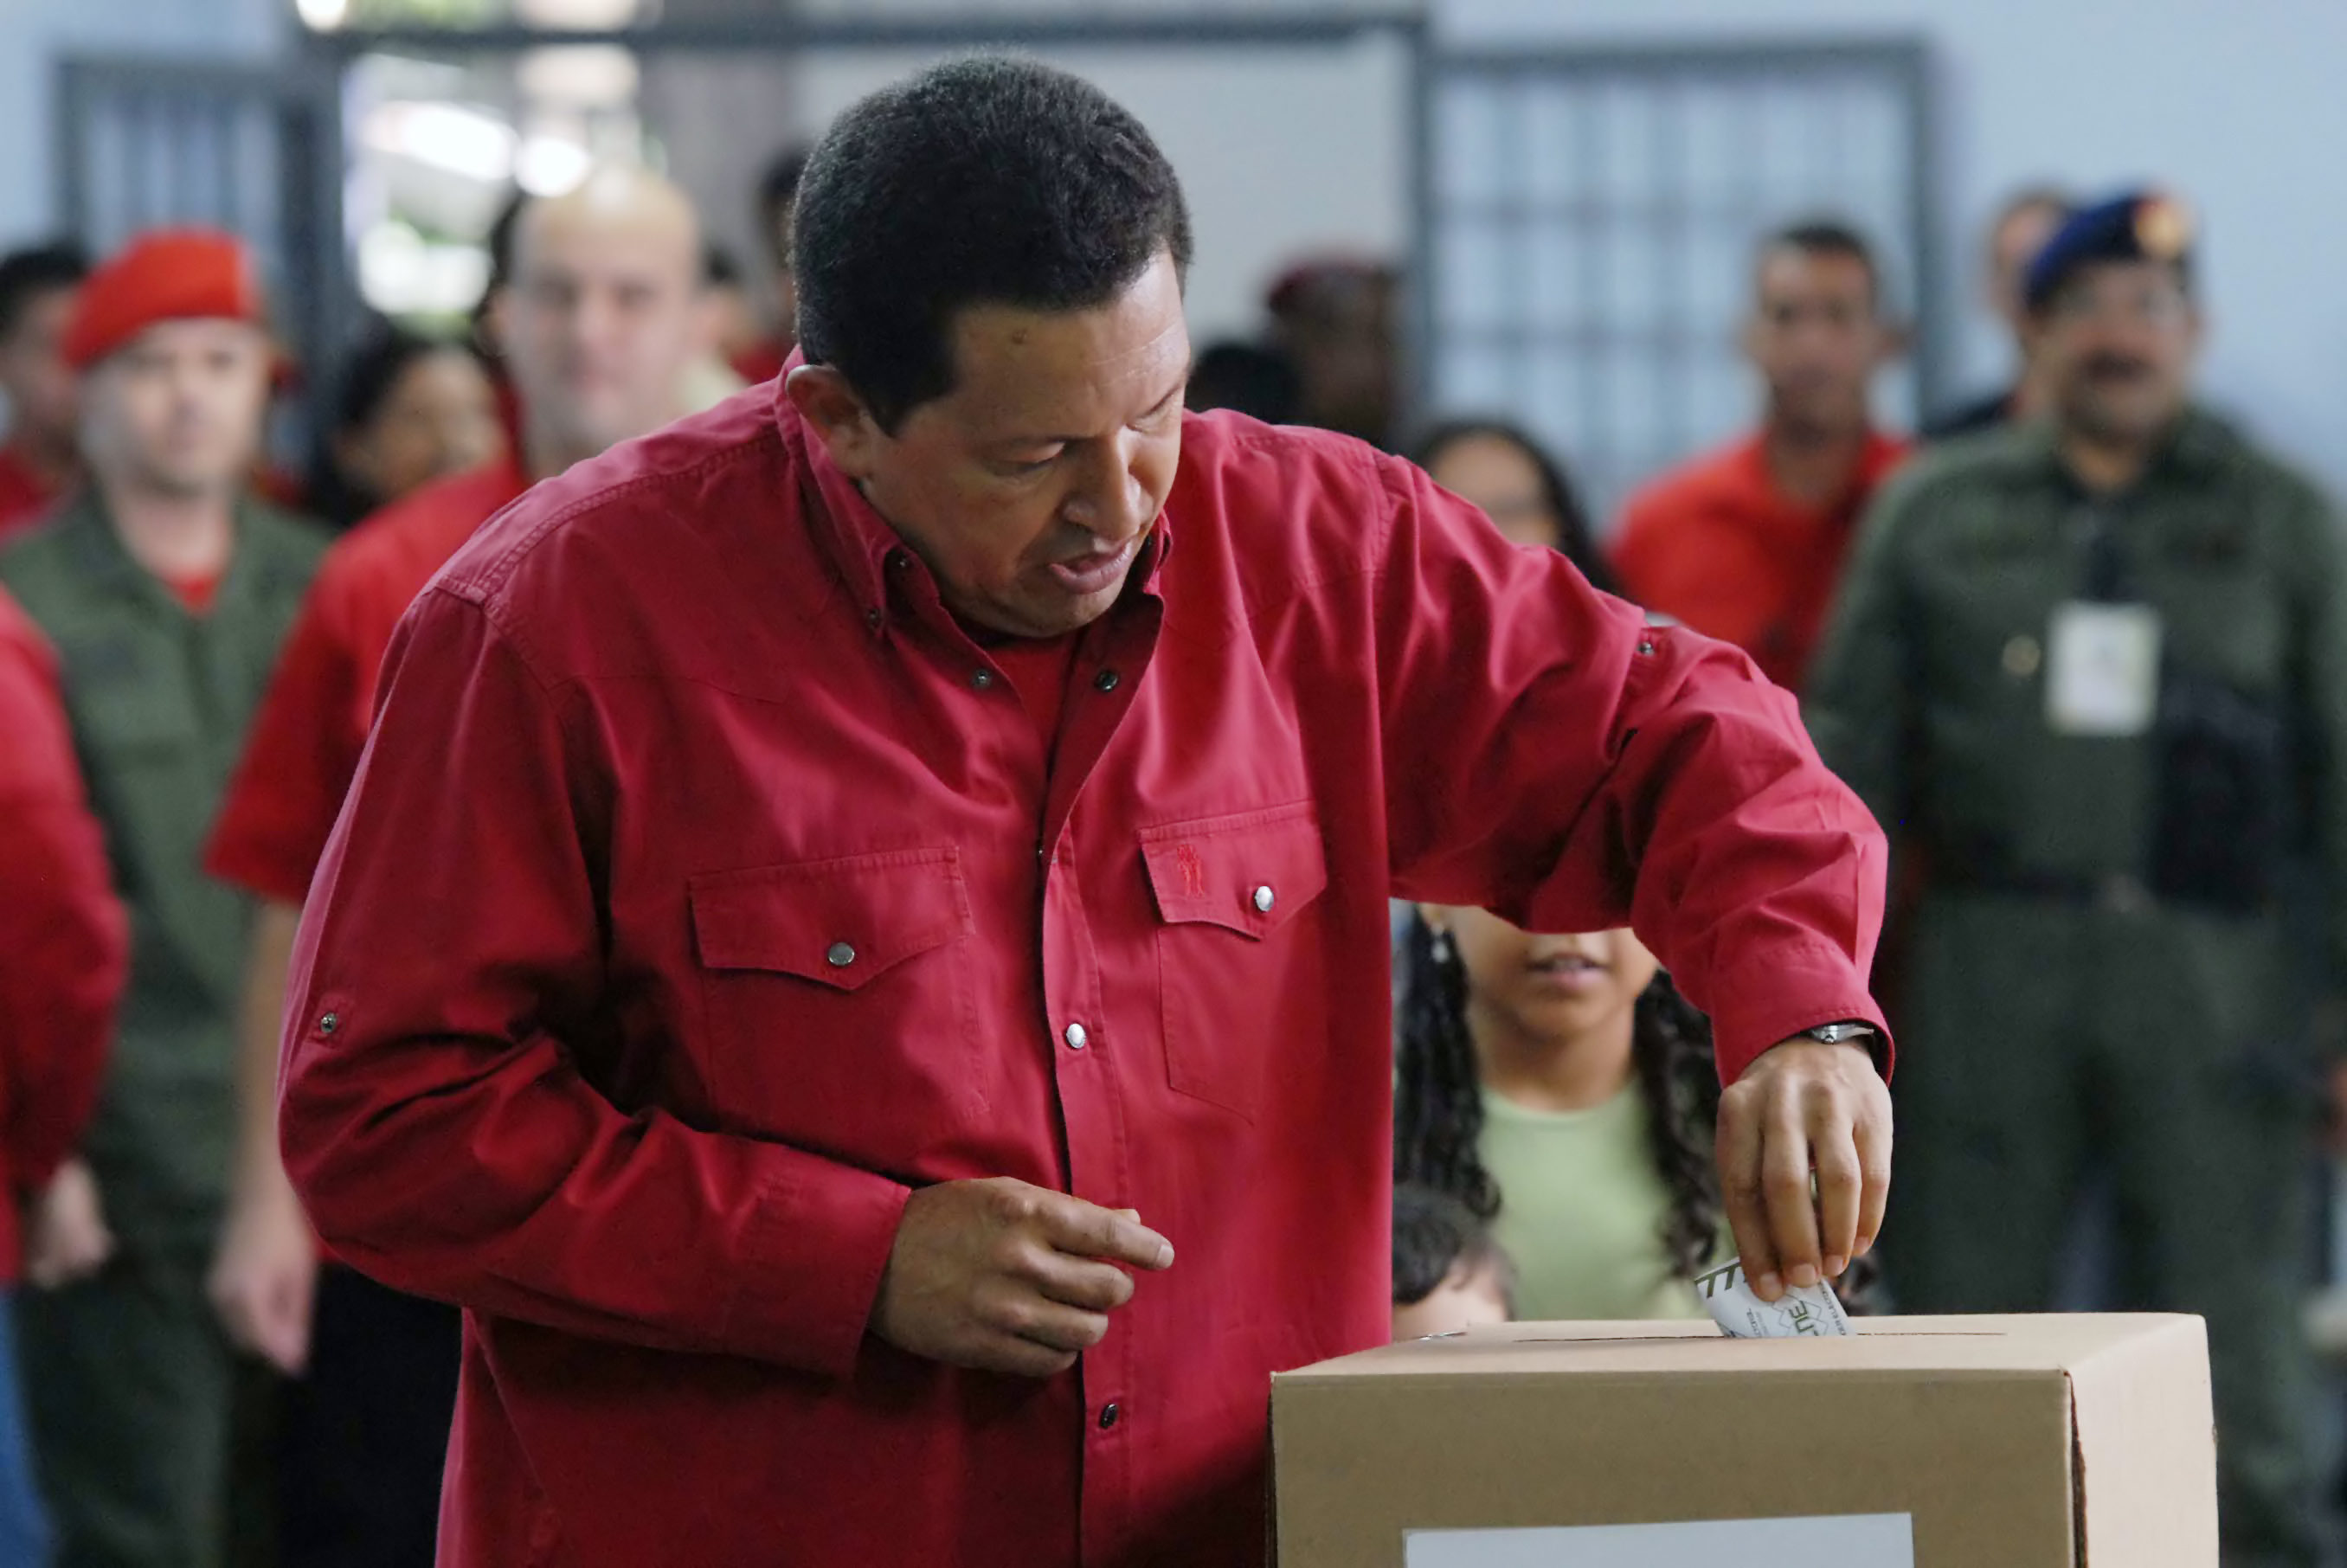 Chavez voting in 2007. (Wikimedia)